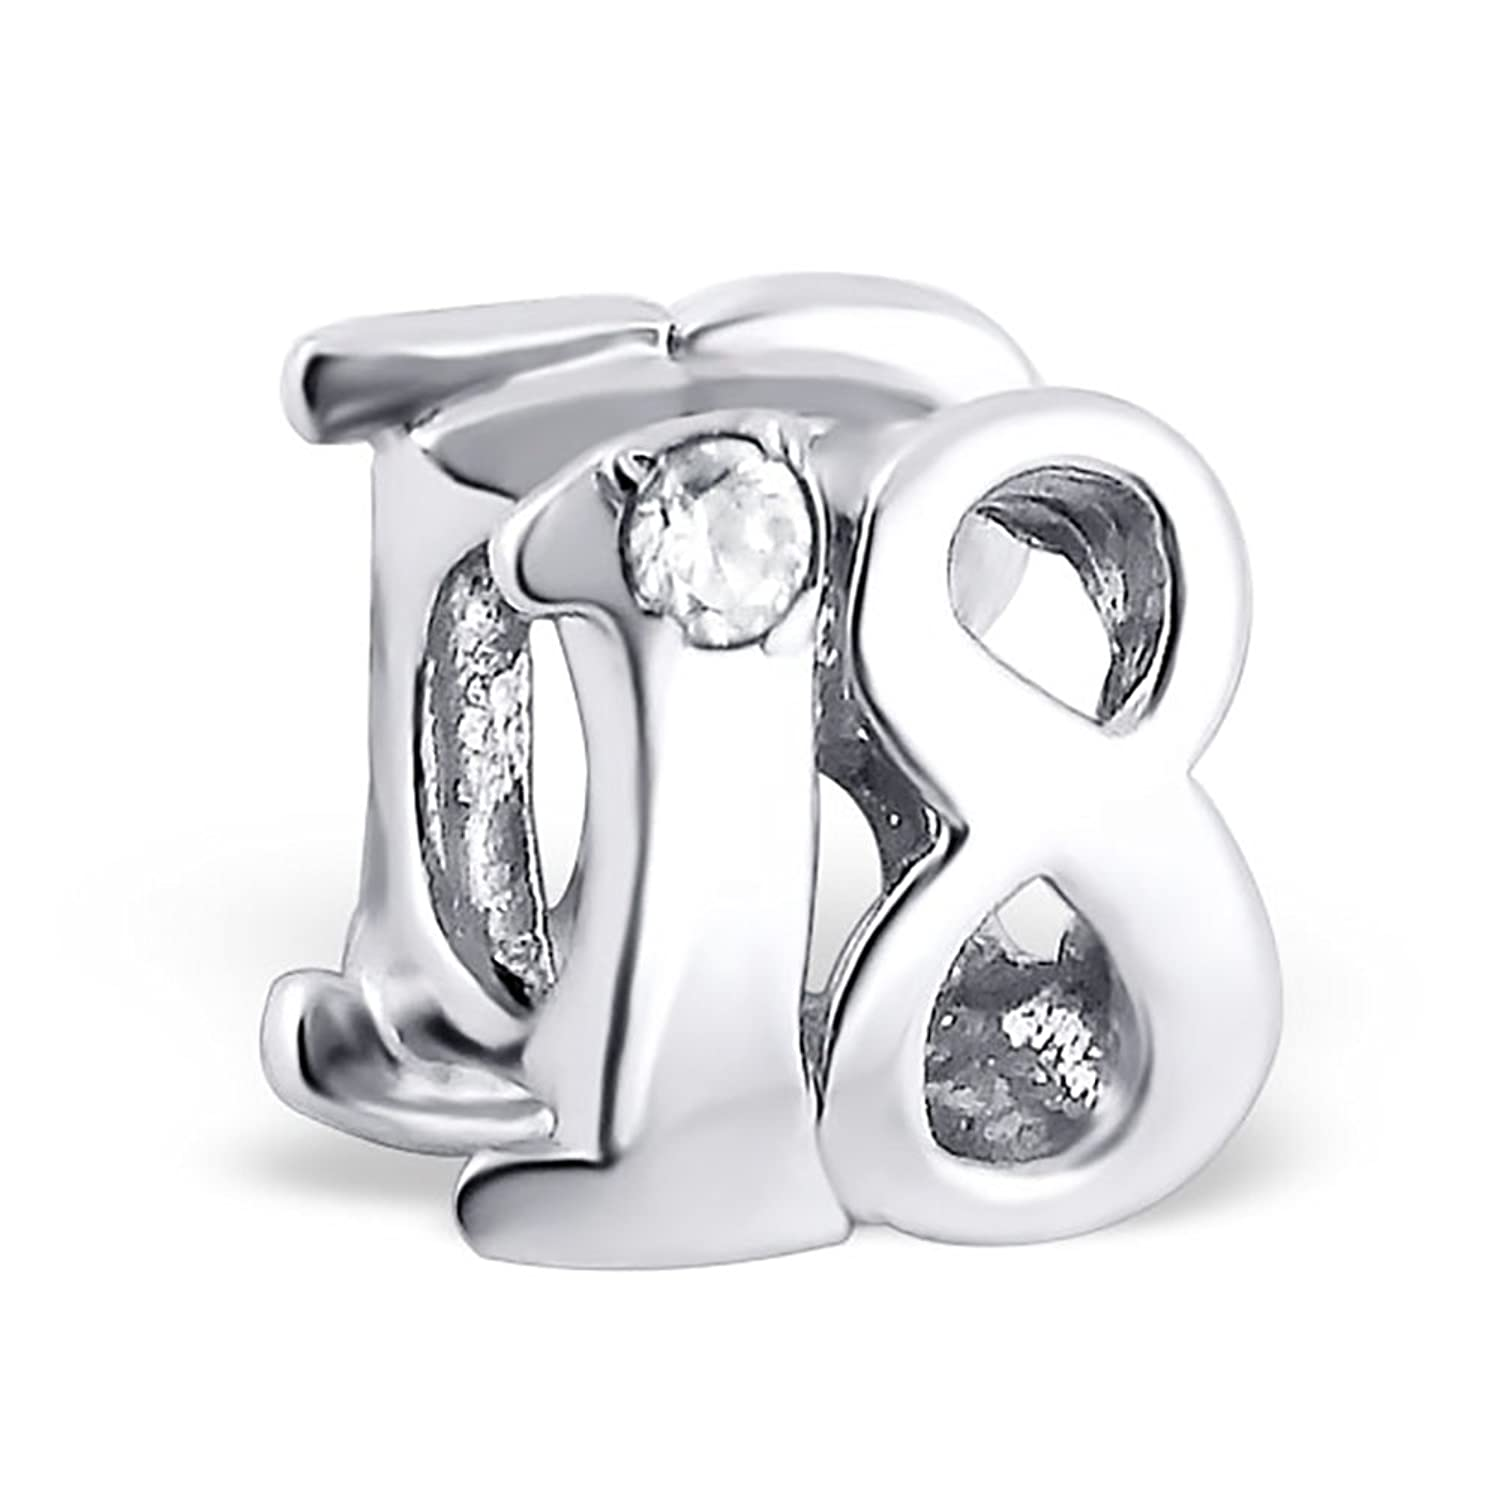 [Sponsored]18th Birthday Celebration Charm Bead - Sterling Silver White Crystals - Gift boxed Lf9co95zLX